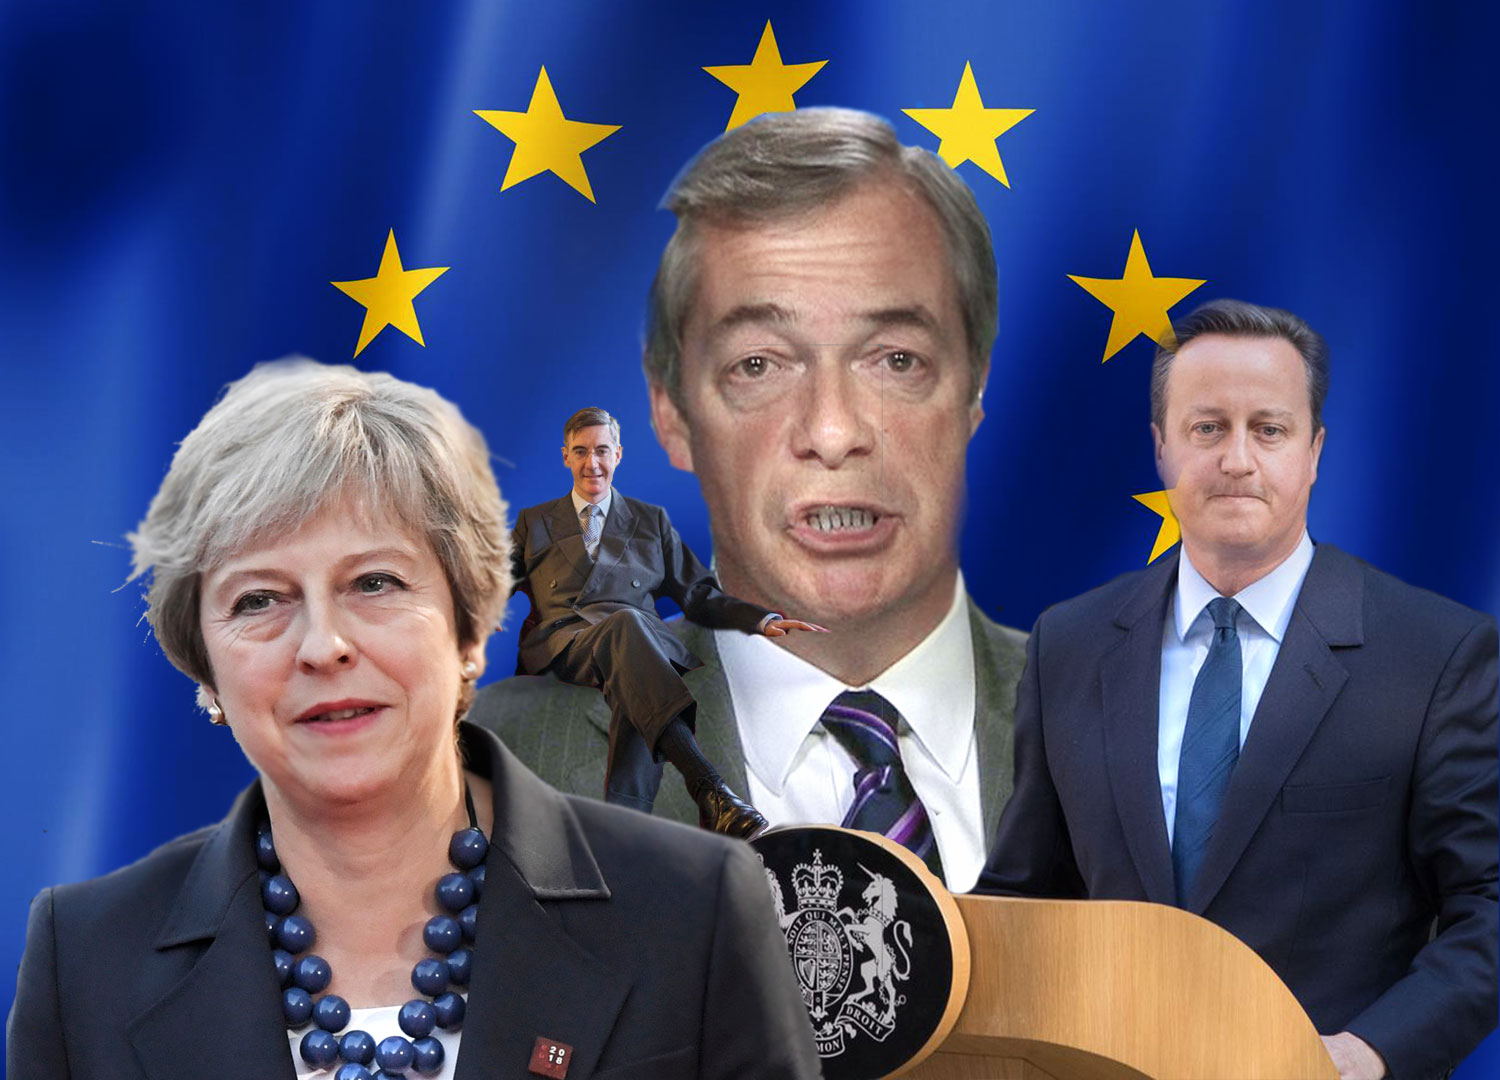 image of Nigel Farage, Jacob Rees Mogg, David Cameron and Theresa May together in front of the EU flag